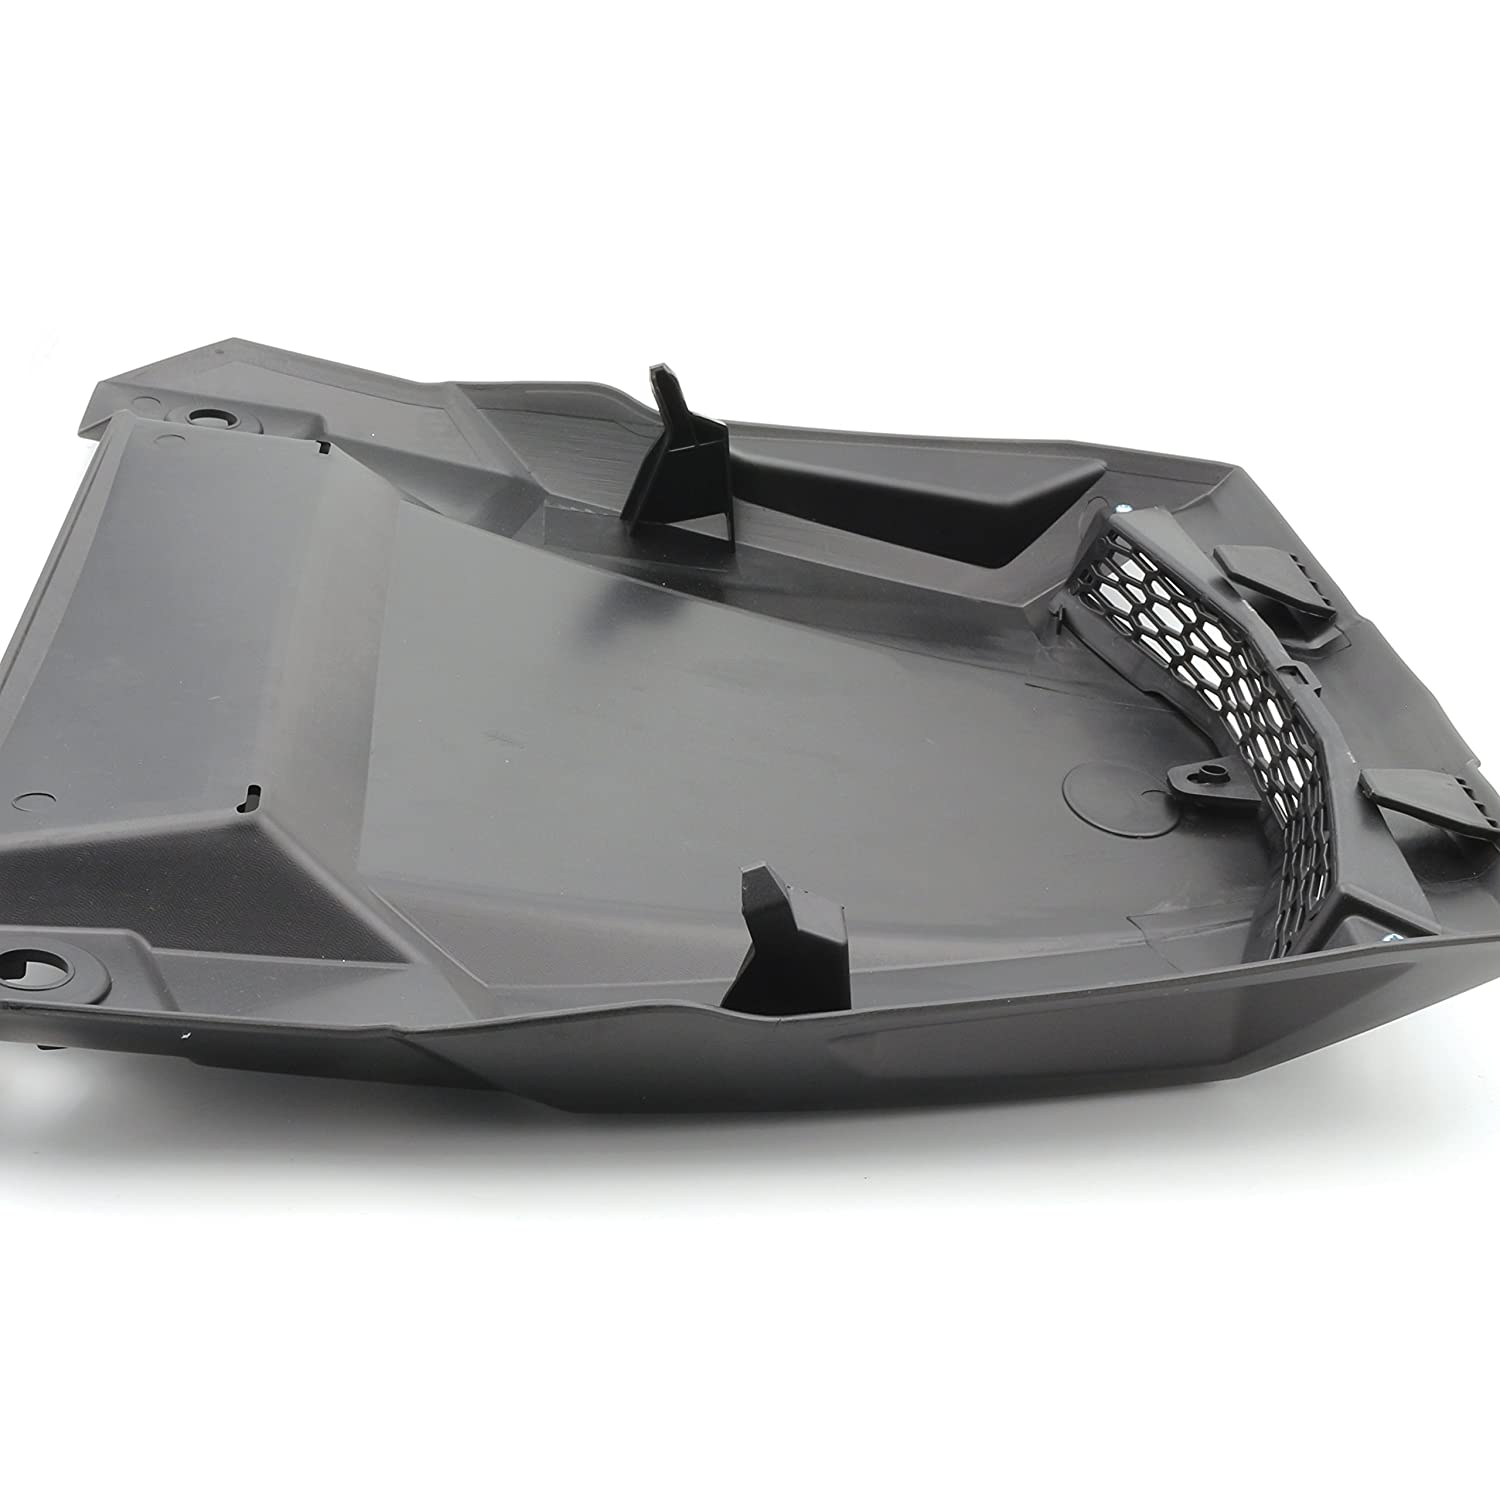 with Air Intake Fit for Polaris RZR XP 1000 /& 900 S /& Turbo CPOWACE Hood Scoop Replacement